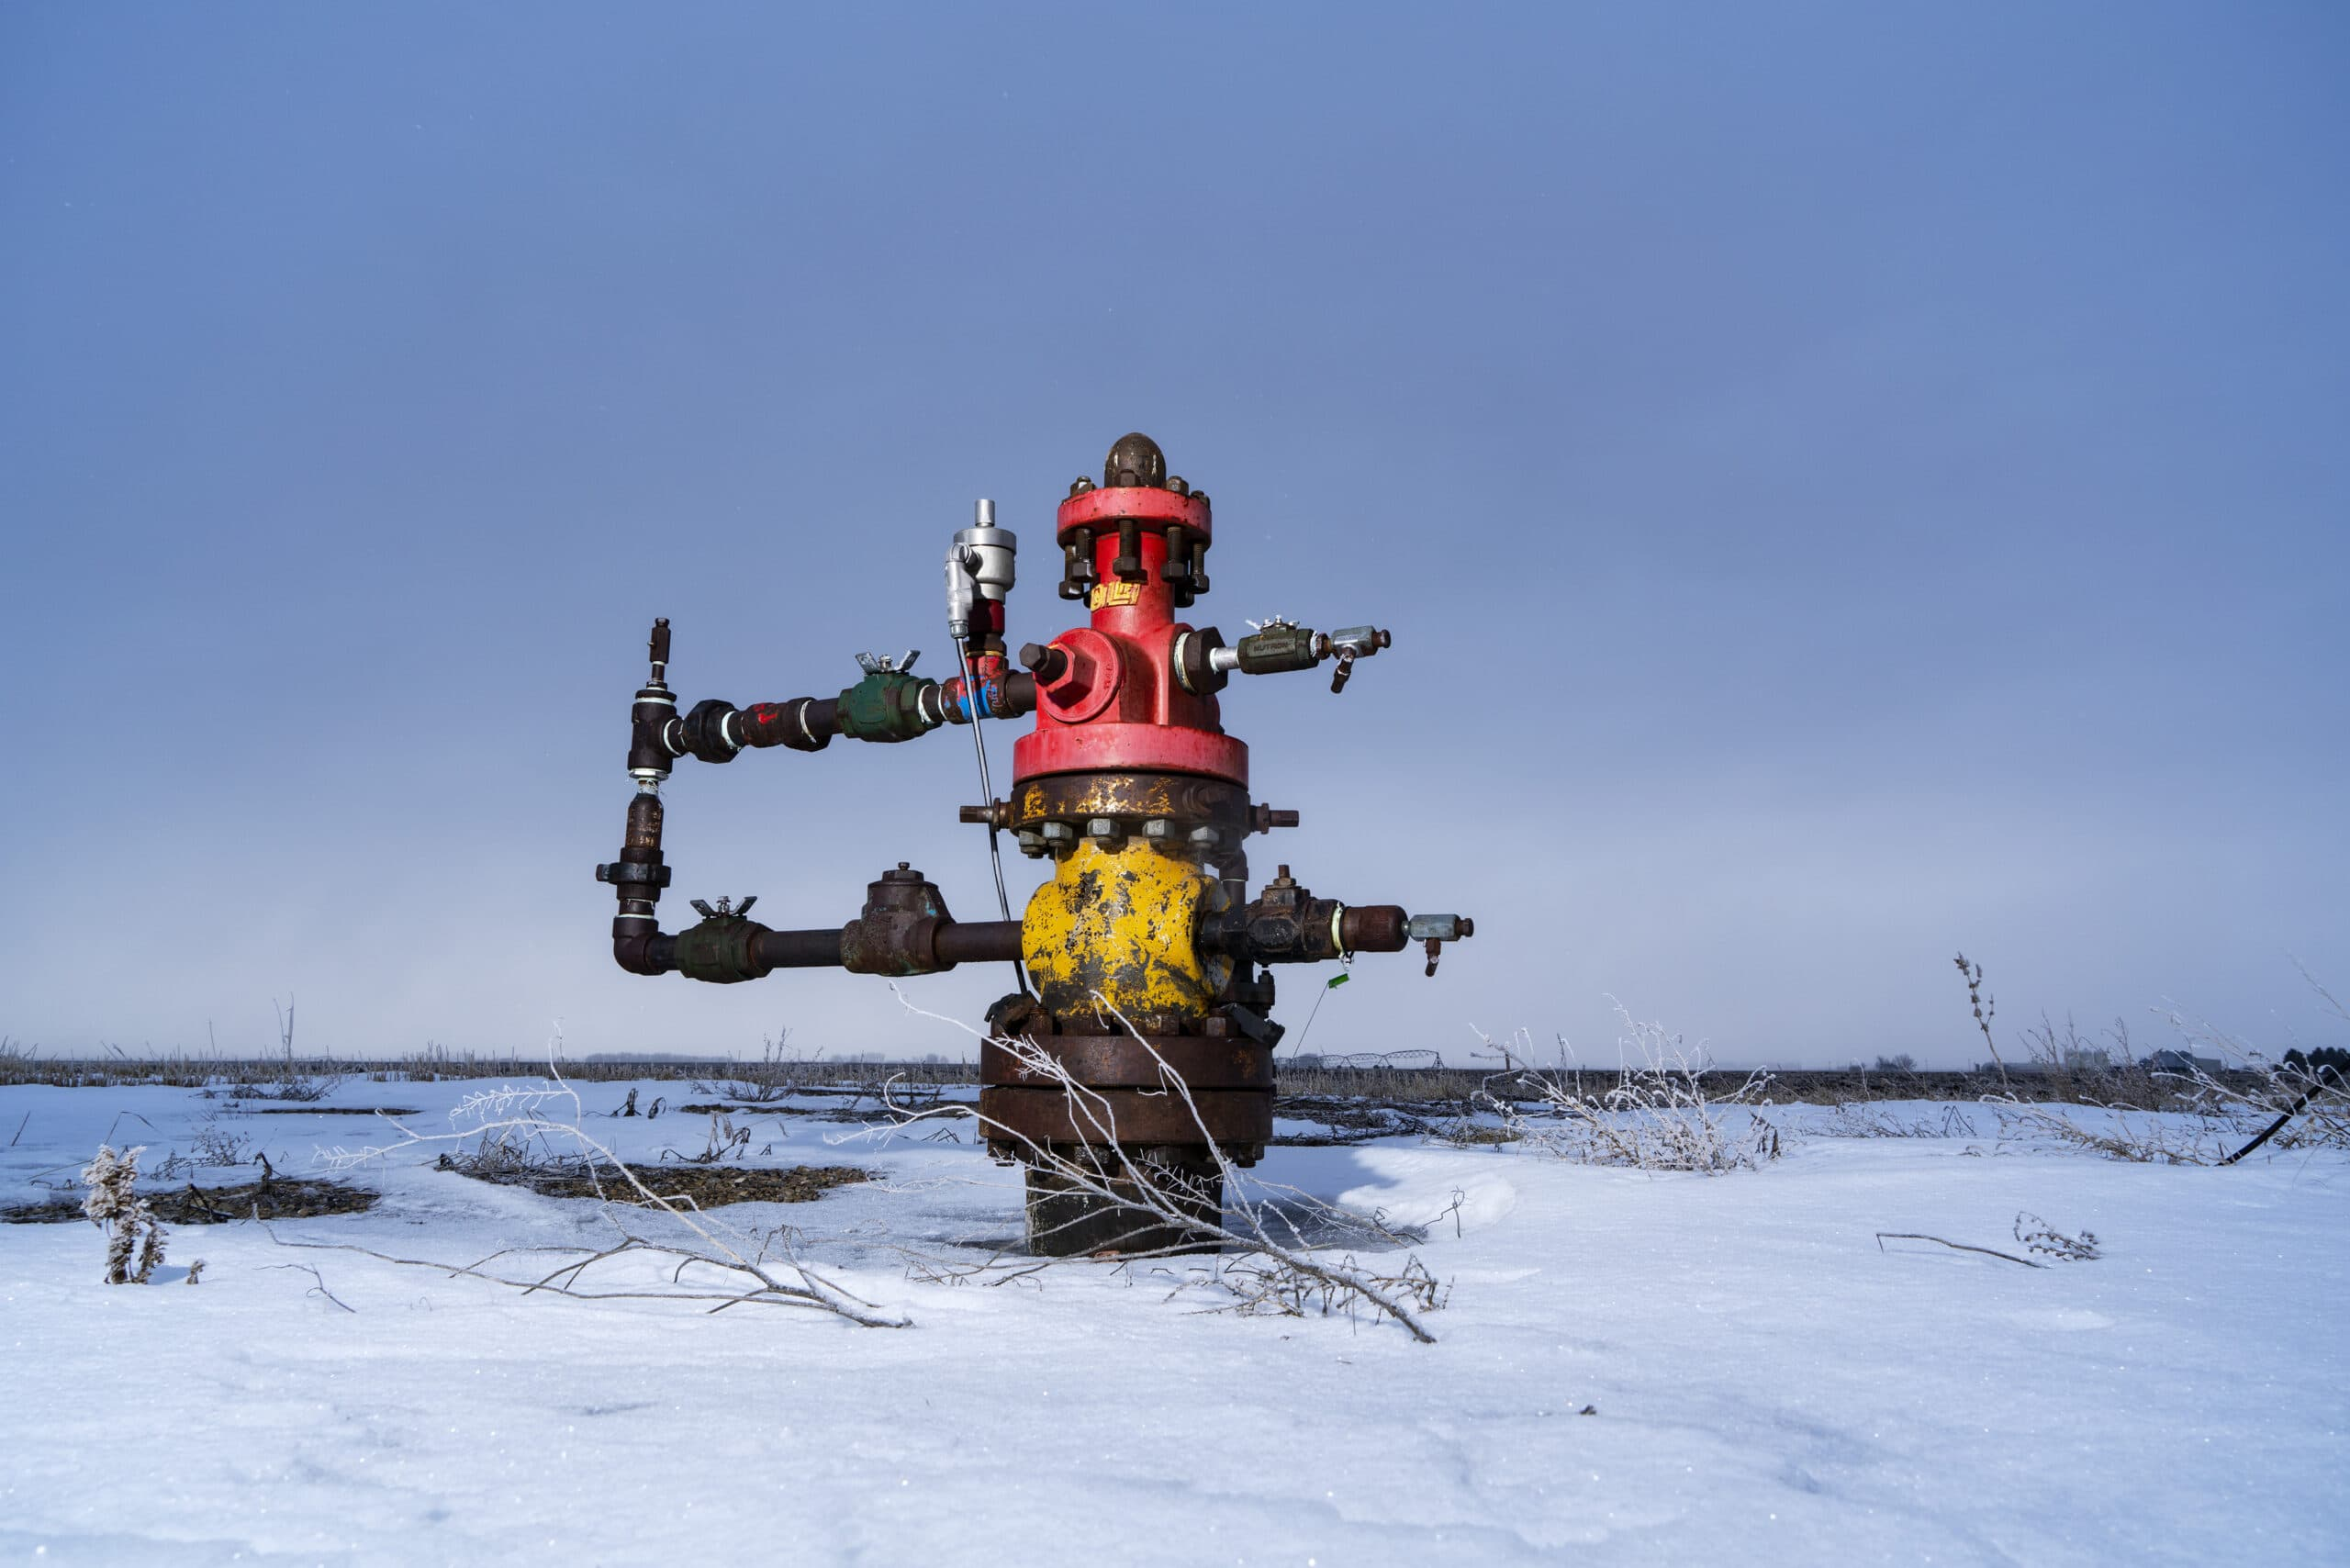 An oil well in the snow near Taber, Alberta